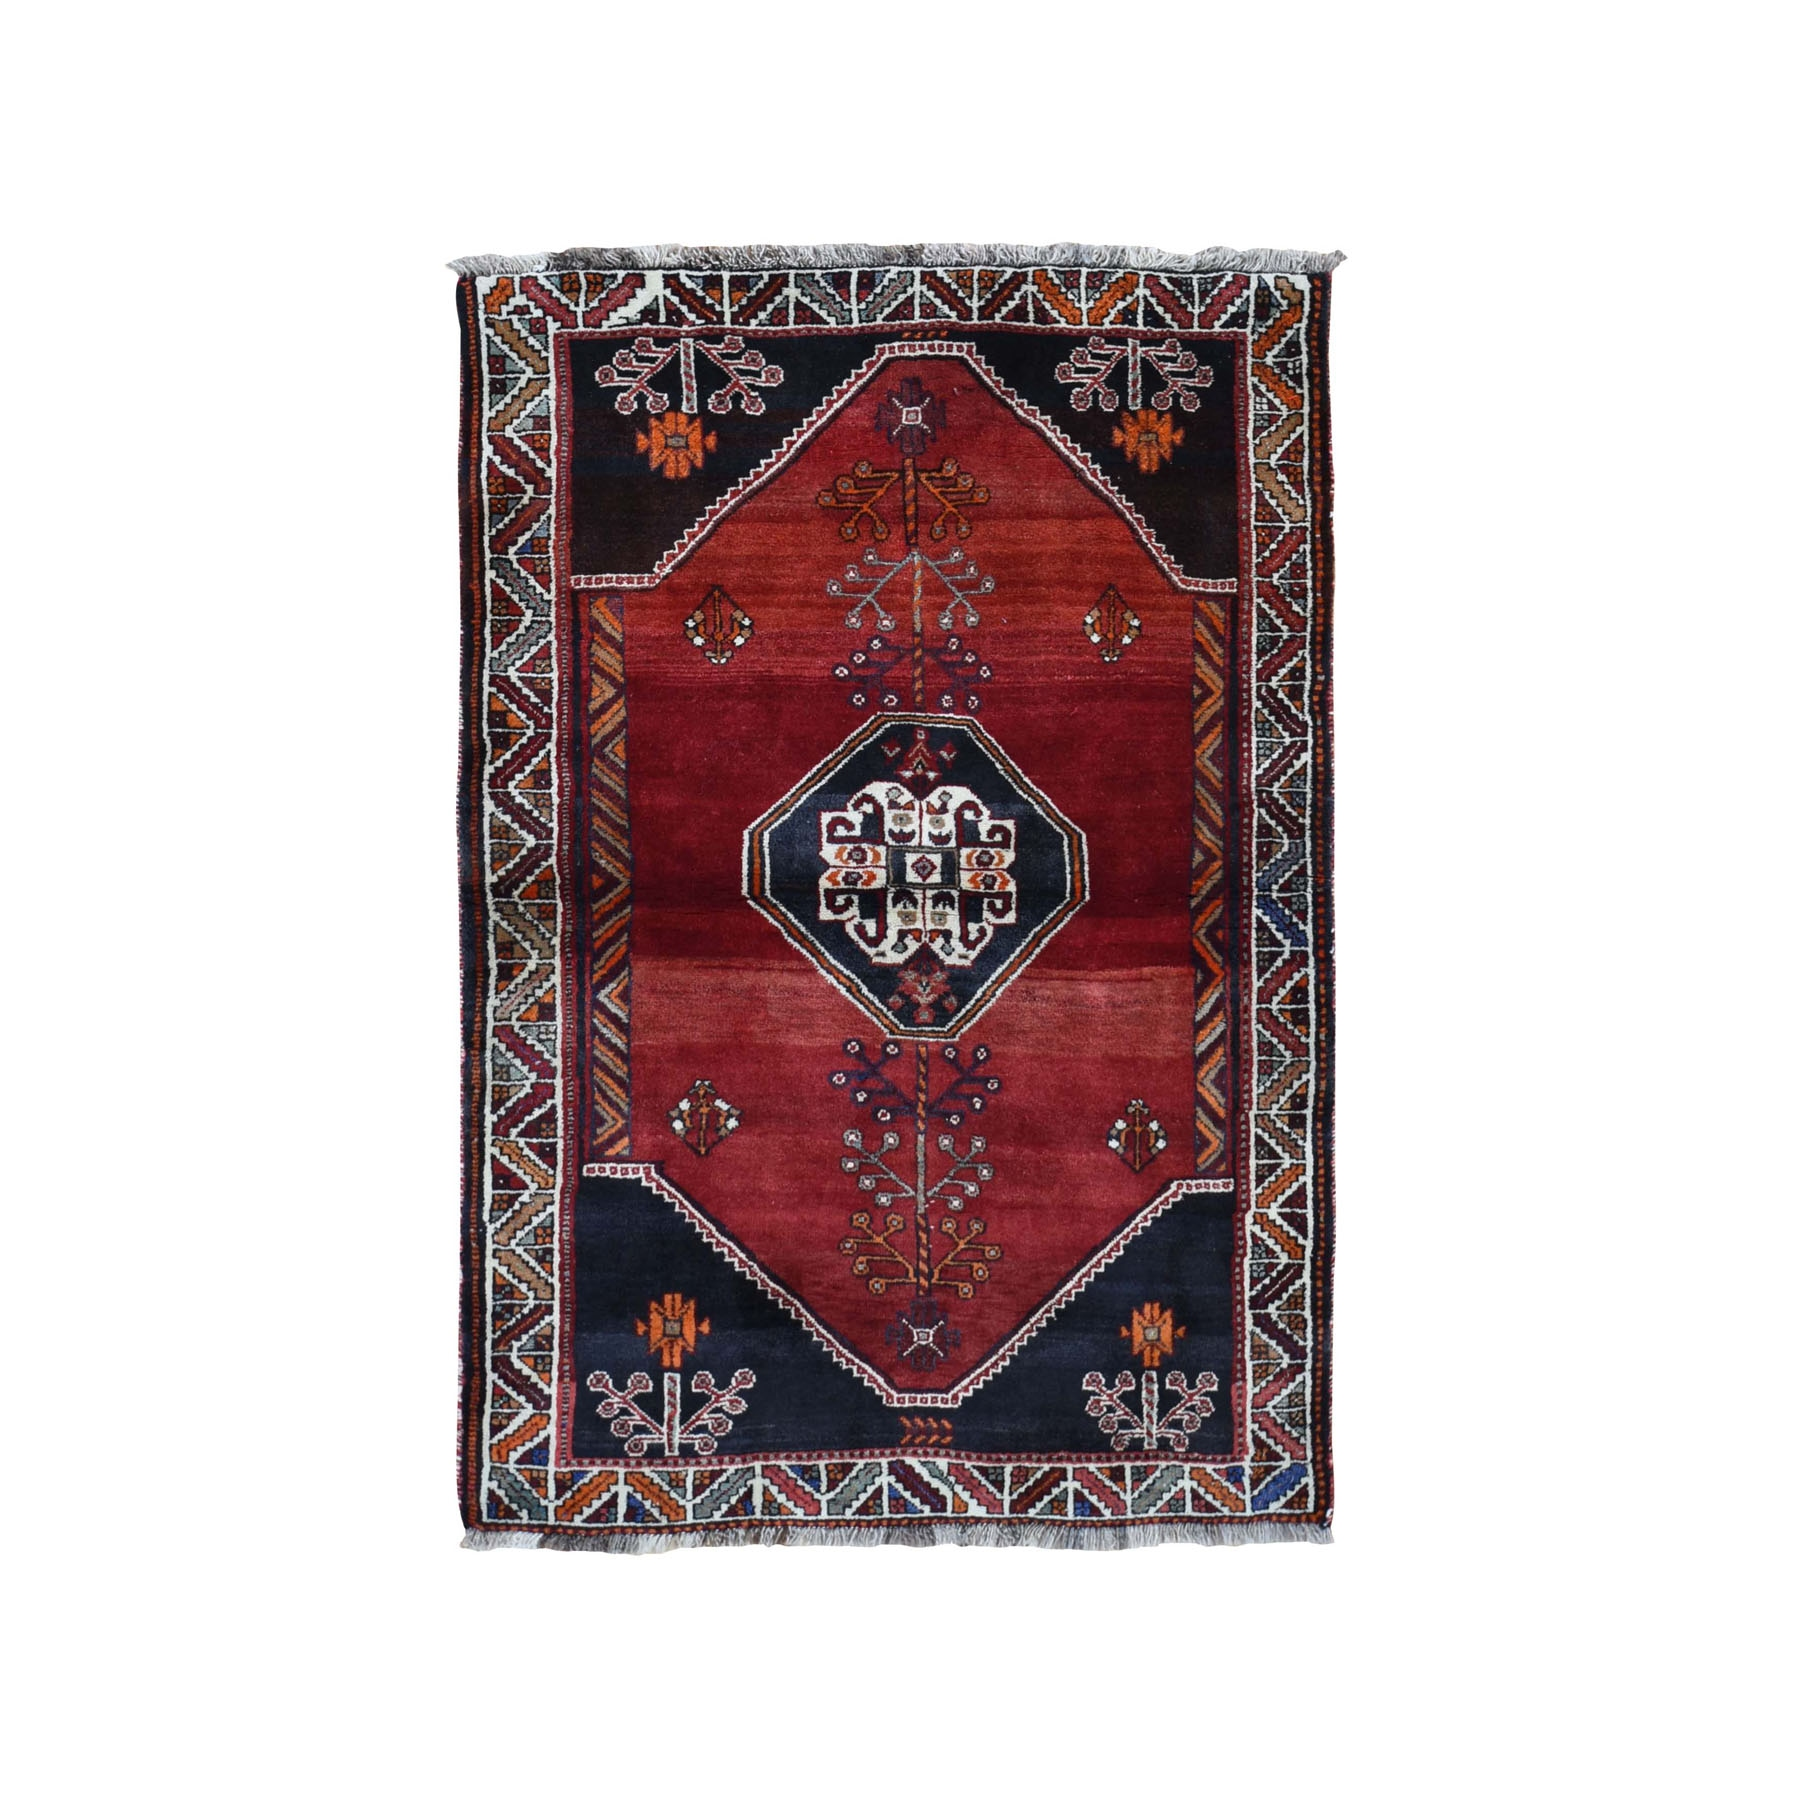 "4'X5'9"" Red New Persian Shiraz Abrush Pure Wool Hand Knotted Oriental Rug moad9aeb"